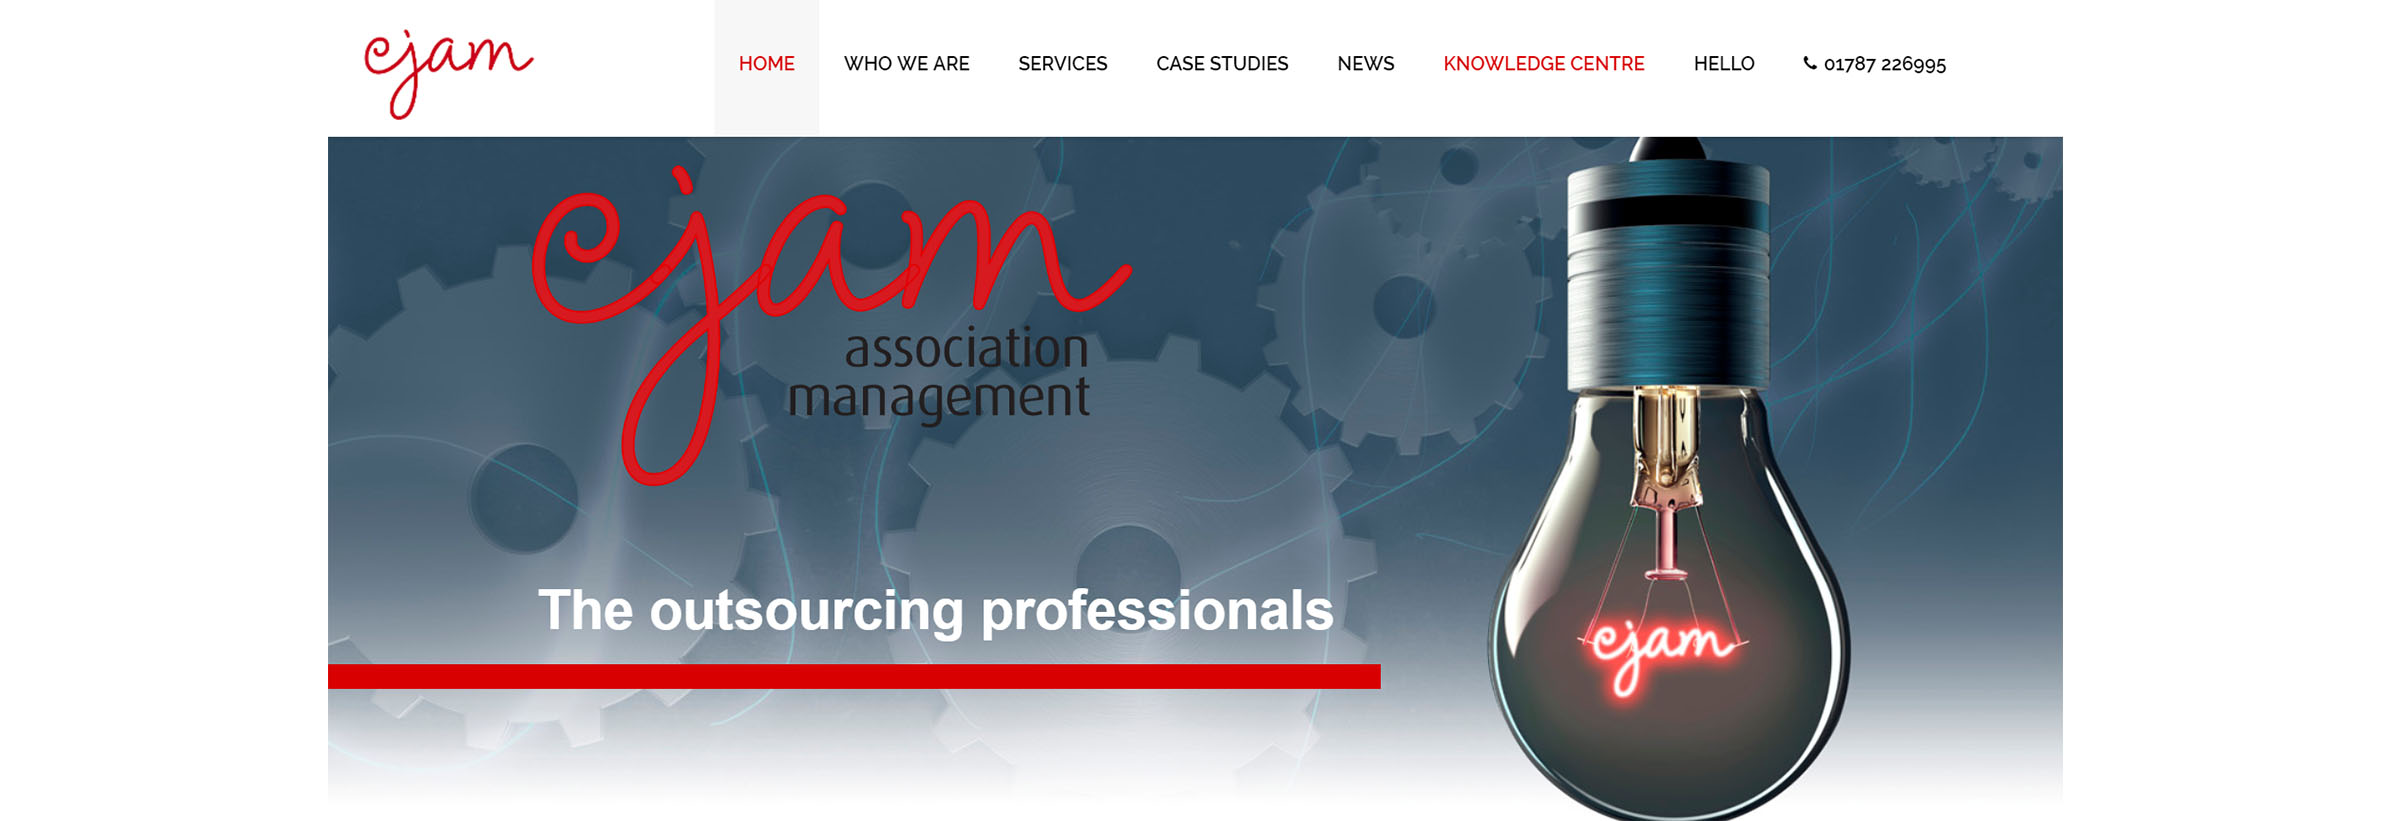 New CJAM Website Showcases Digital Expertise